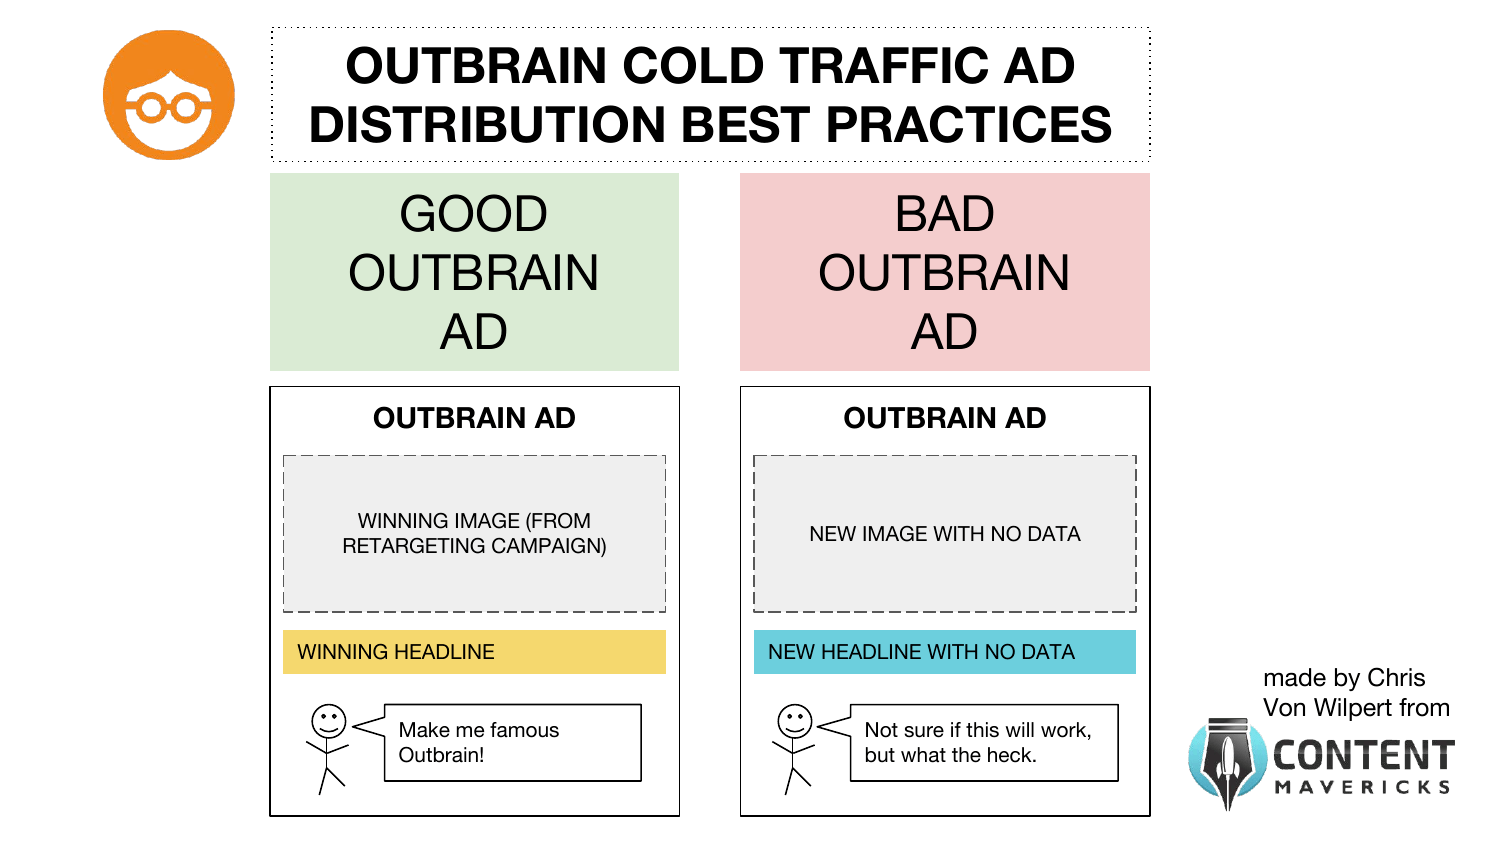 outbrain cold traffic ad content distribution best practices image